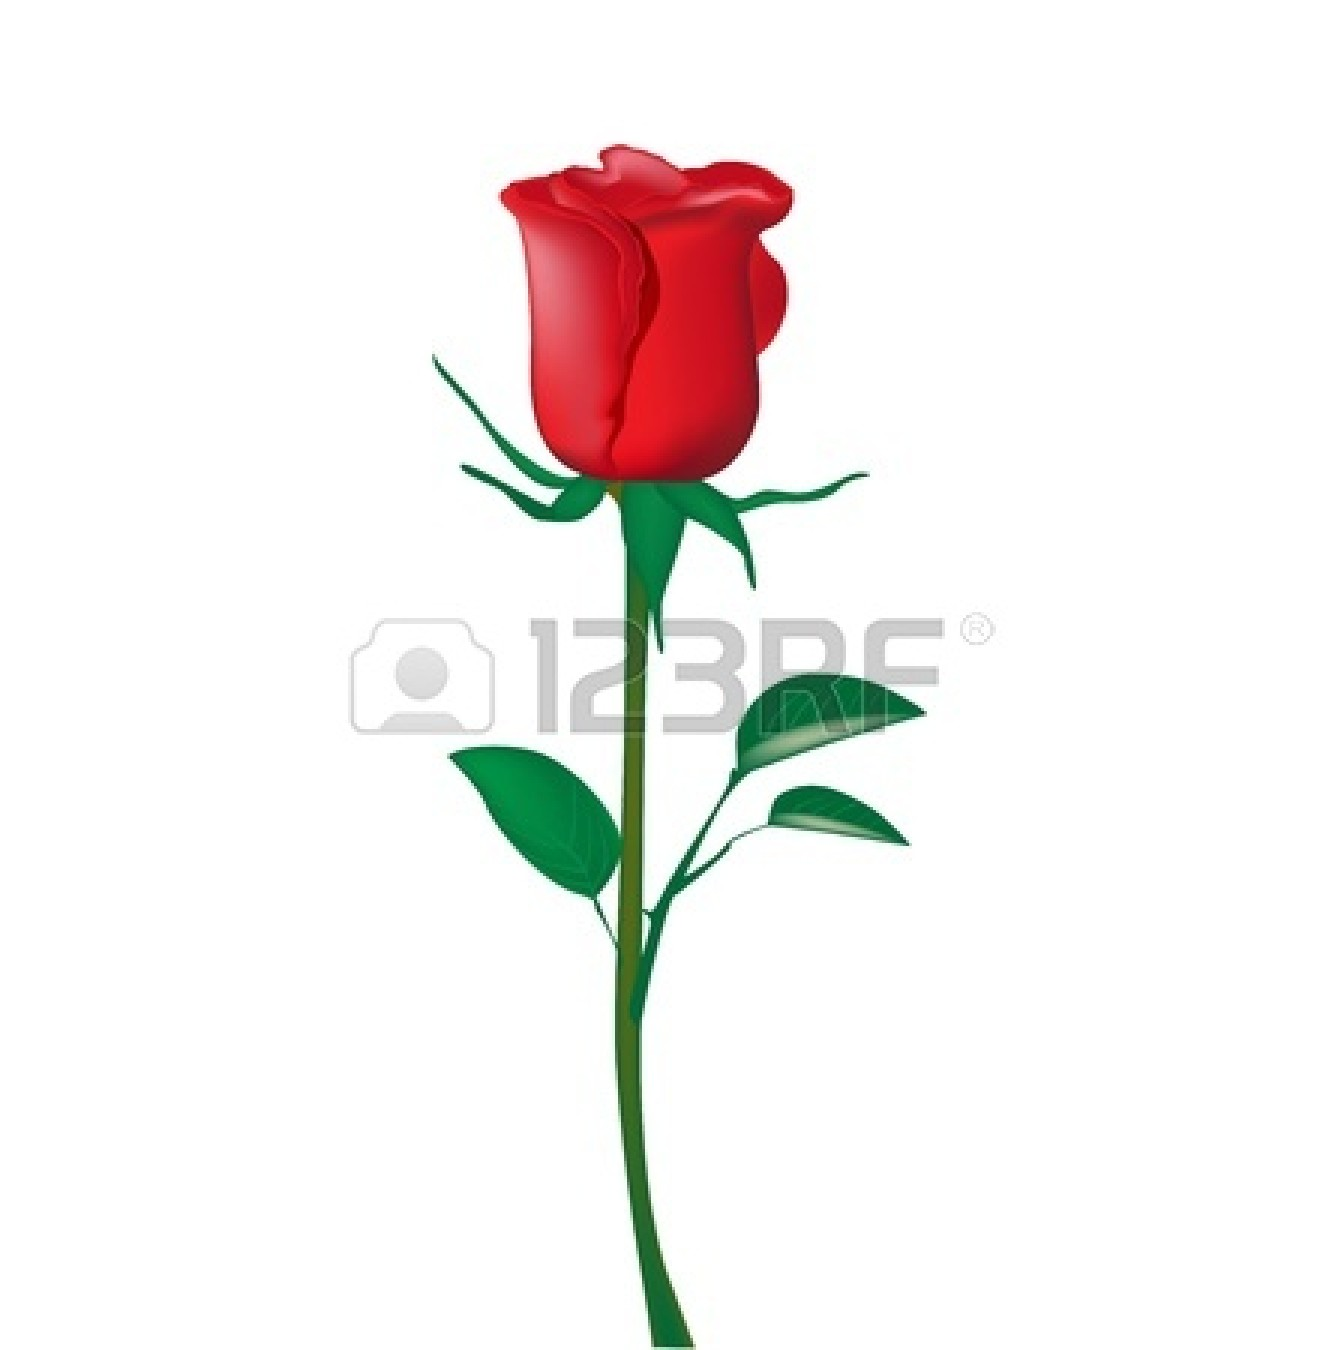 Single Stem Rose Clip Art.